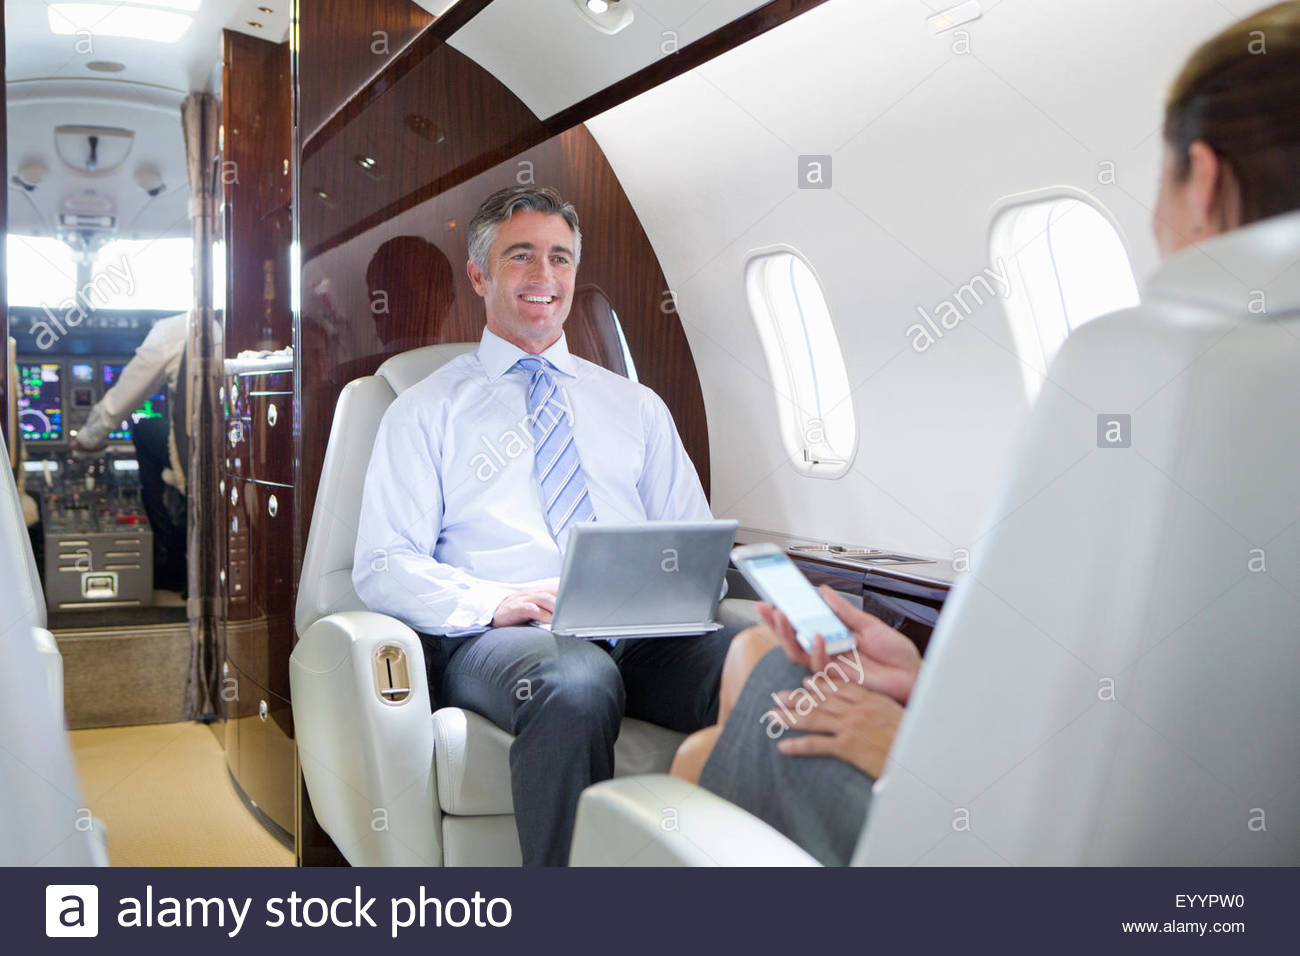 Businesswoman on phone and smiling Businessman with digital tablet having meeting on private jet - Stock Image